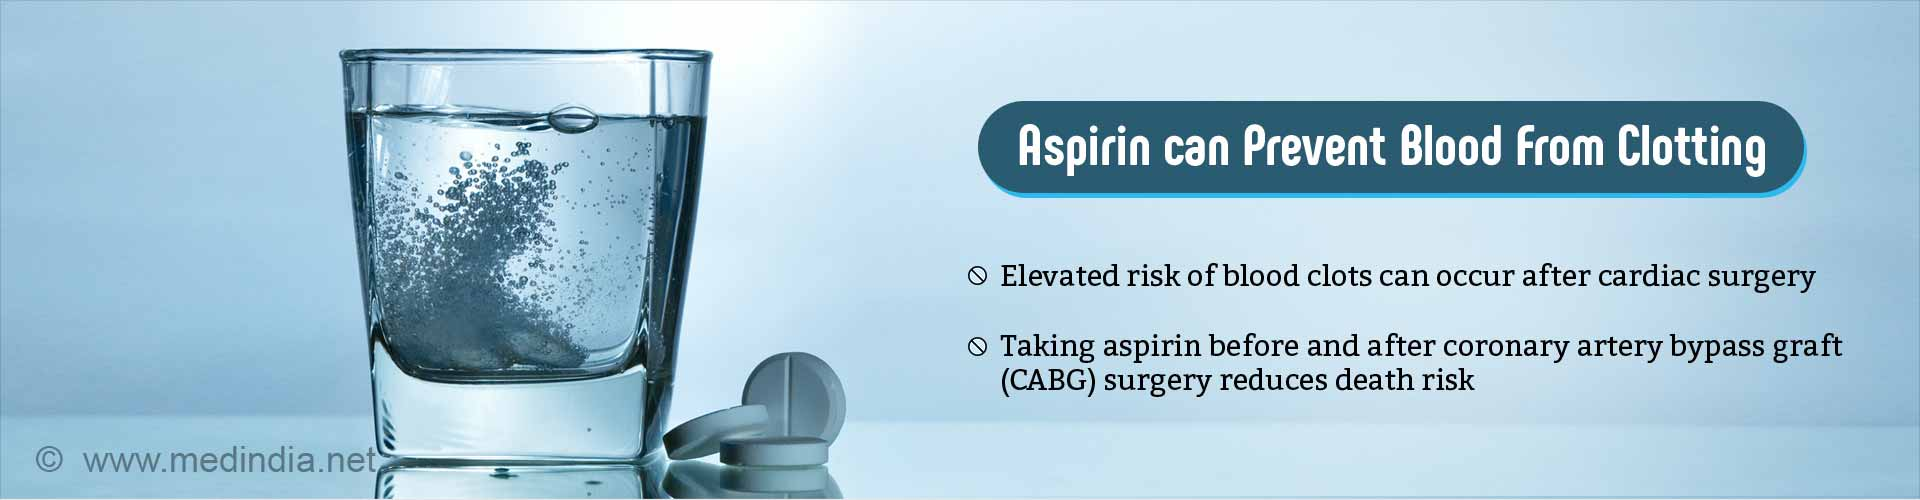 Taking Aspirin Before and After Coronary Artery Bypass may Enhance Survival